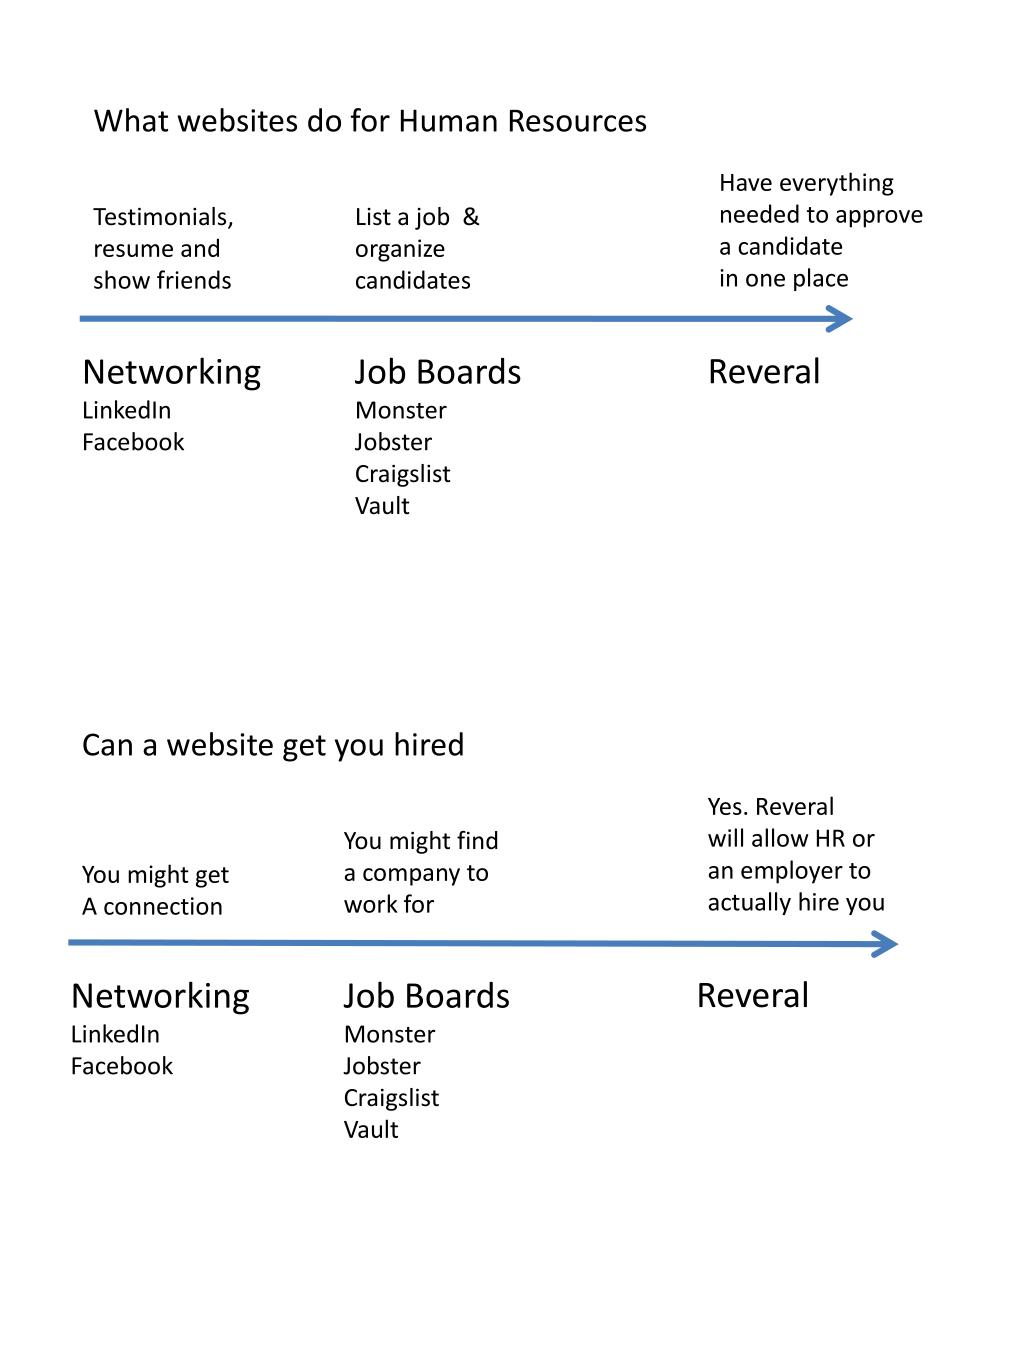 What websites do for Human Resources